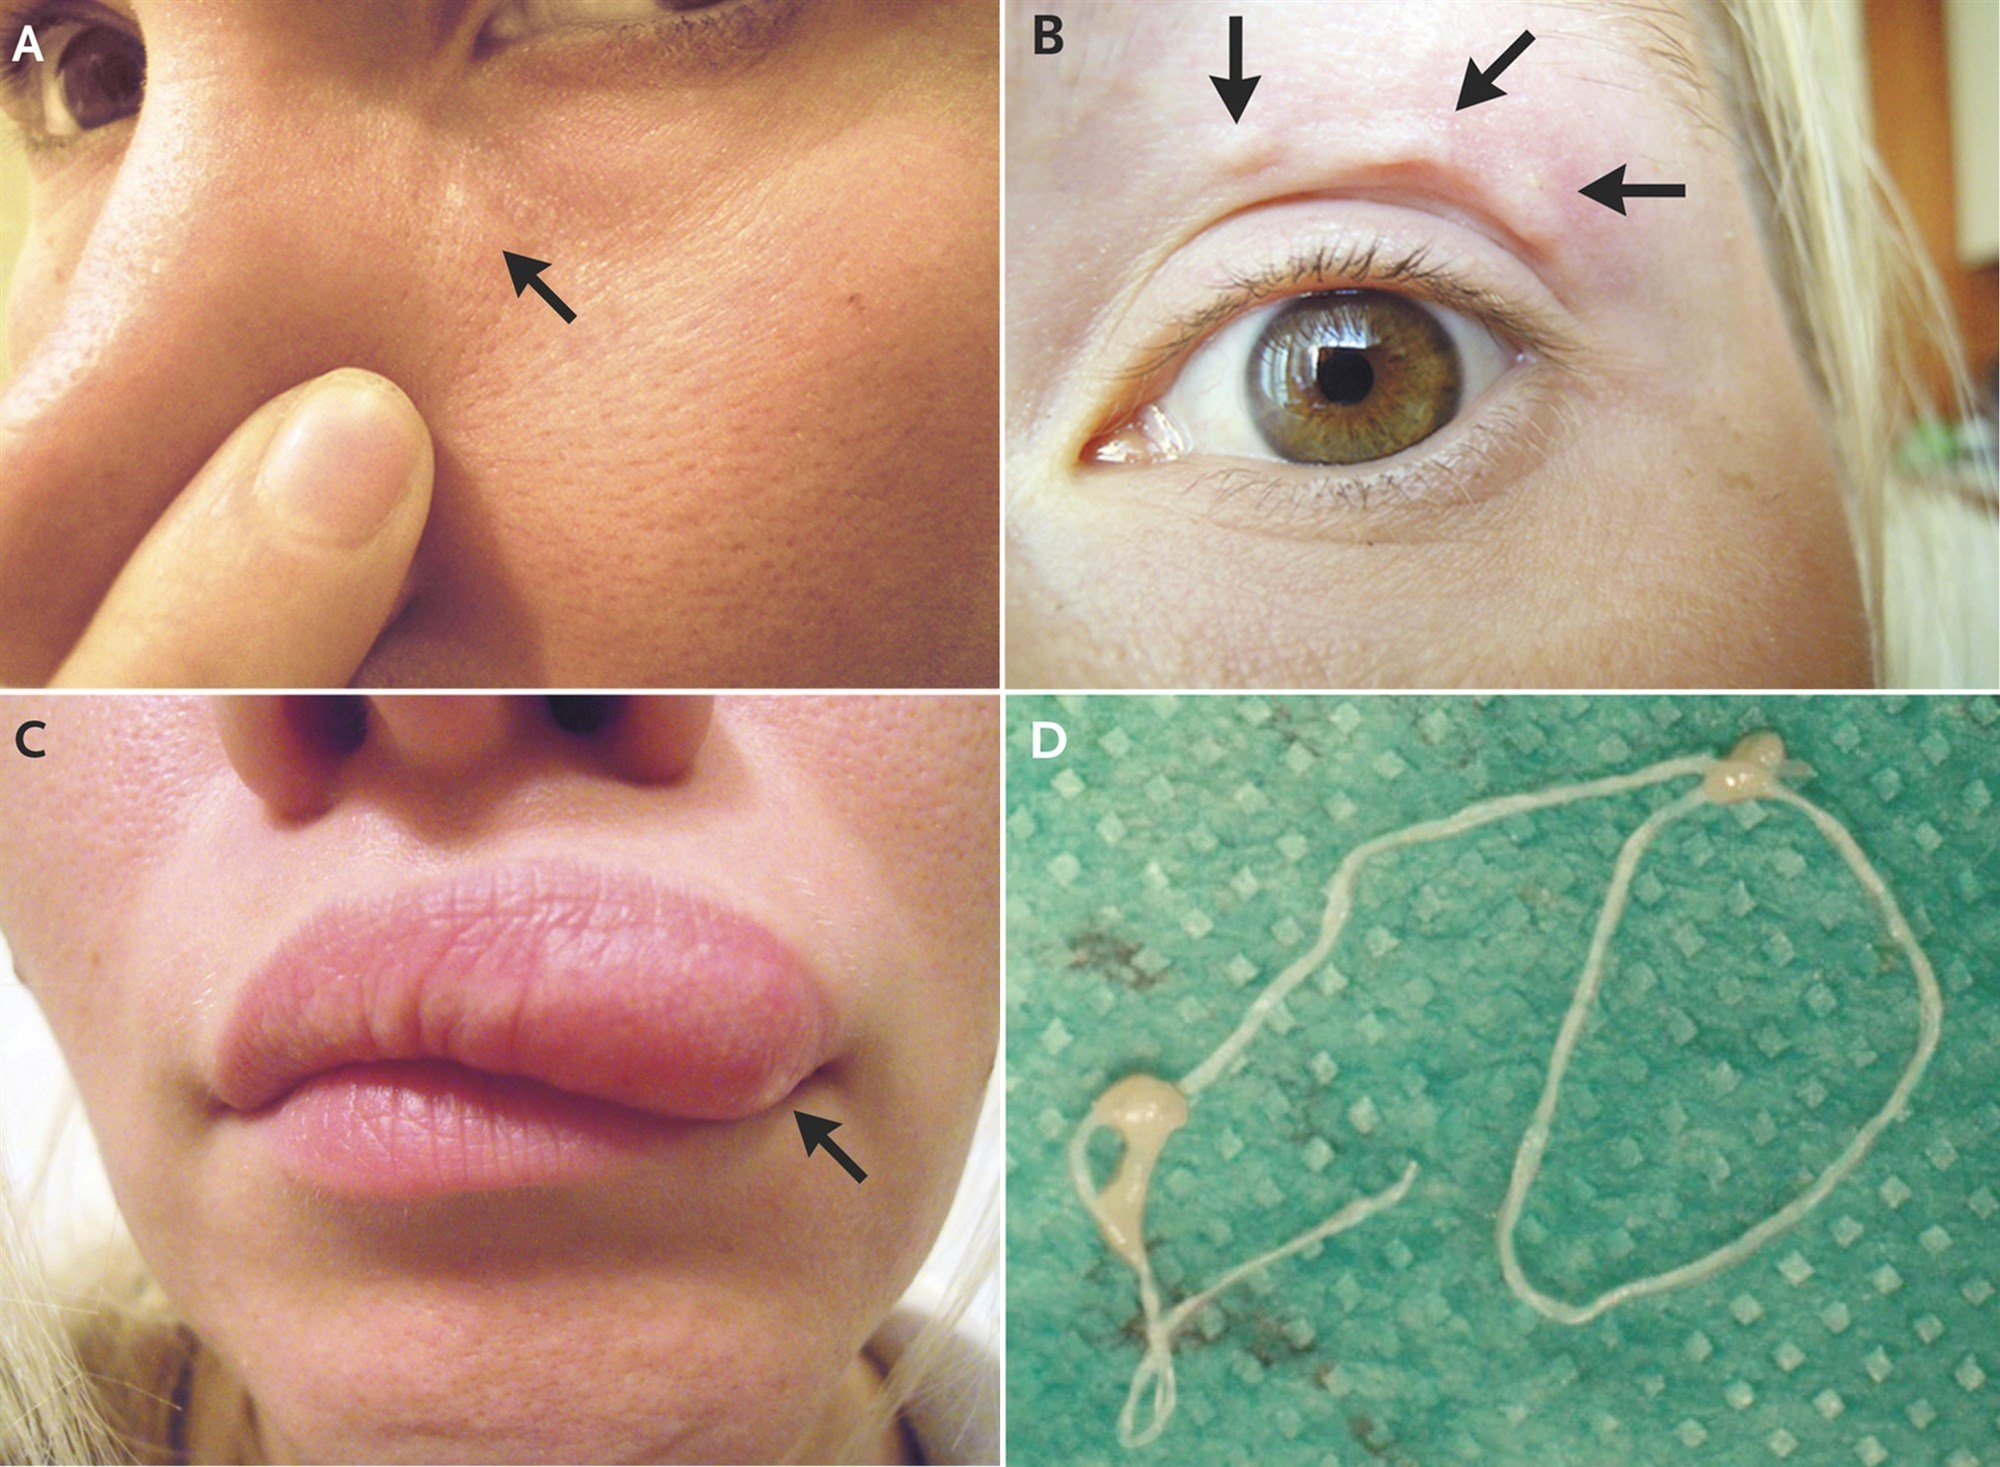 A woman who noticed moving lumps in her face was surprised to learn they were nematodes, probably transmitted by a mosquito bite in Russia, according to a report in the New England Journal of Medicine. (New England Journal of Medicine)